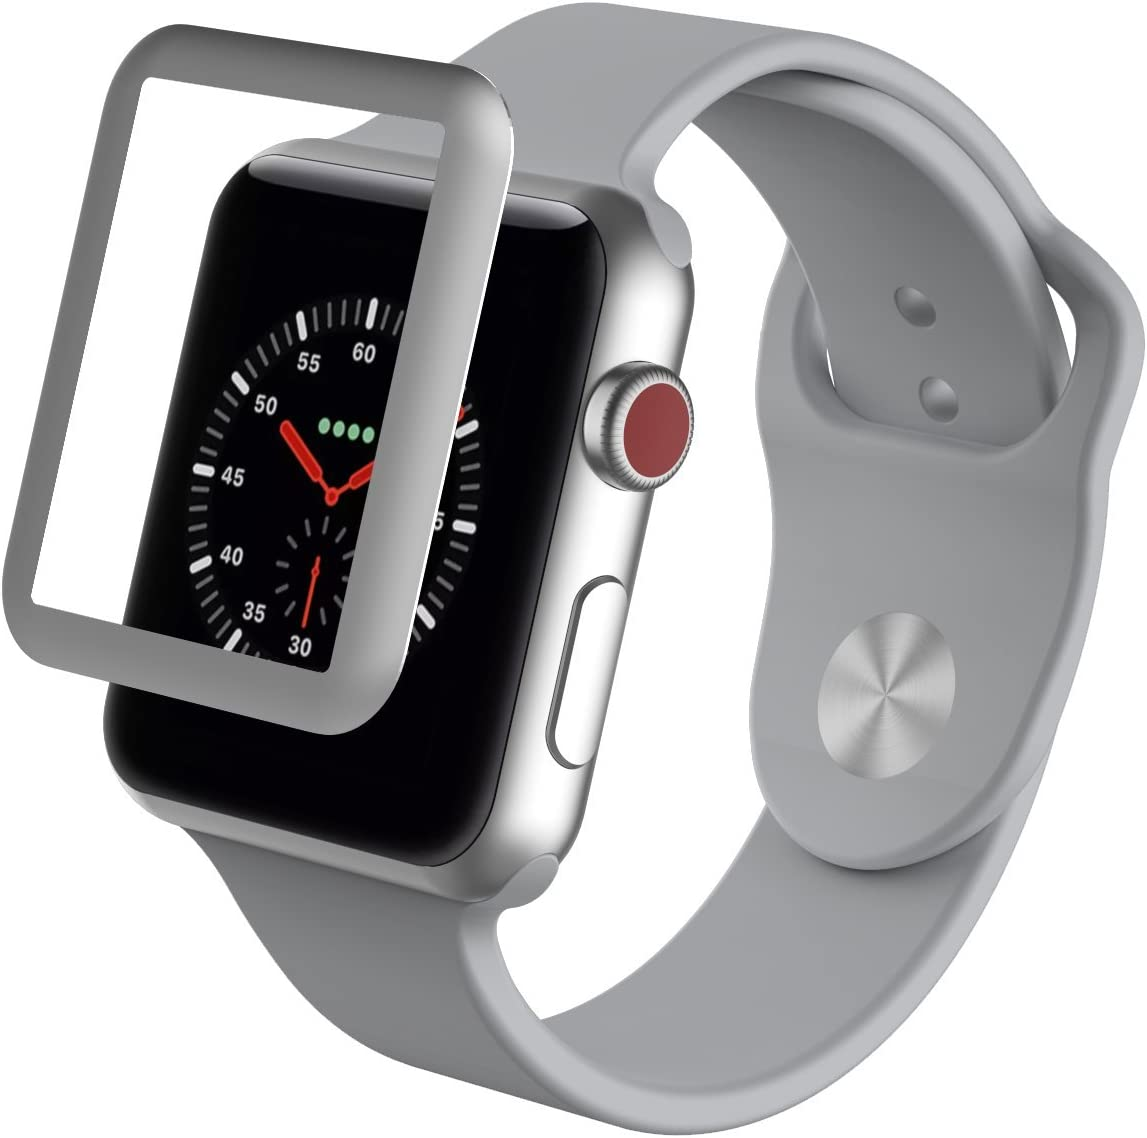 ZAGG InvisibleShield Glass Luxe HD Clarity + Reinforced, Tempered Glass Screen Protector for Apple Watch (38mm) Series 3 - Silver